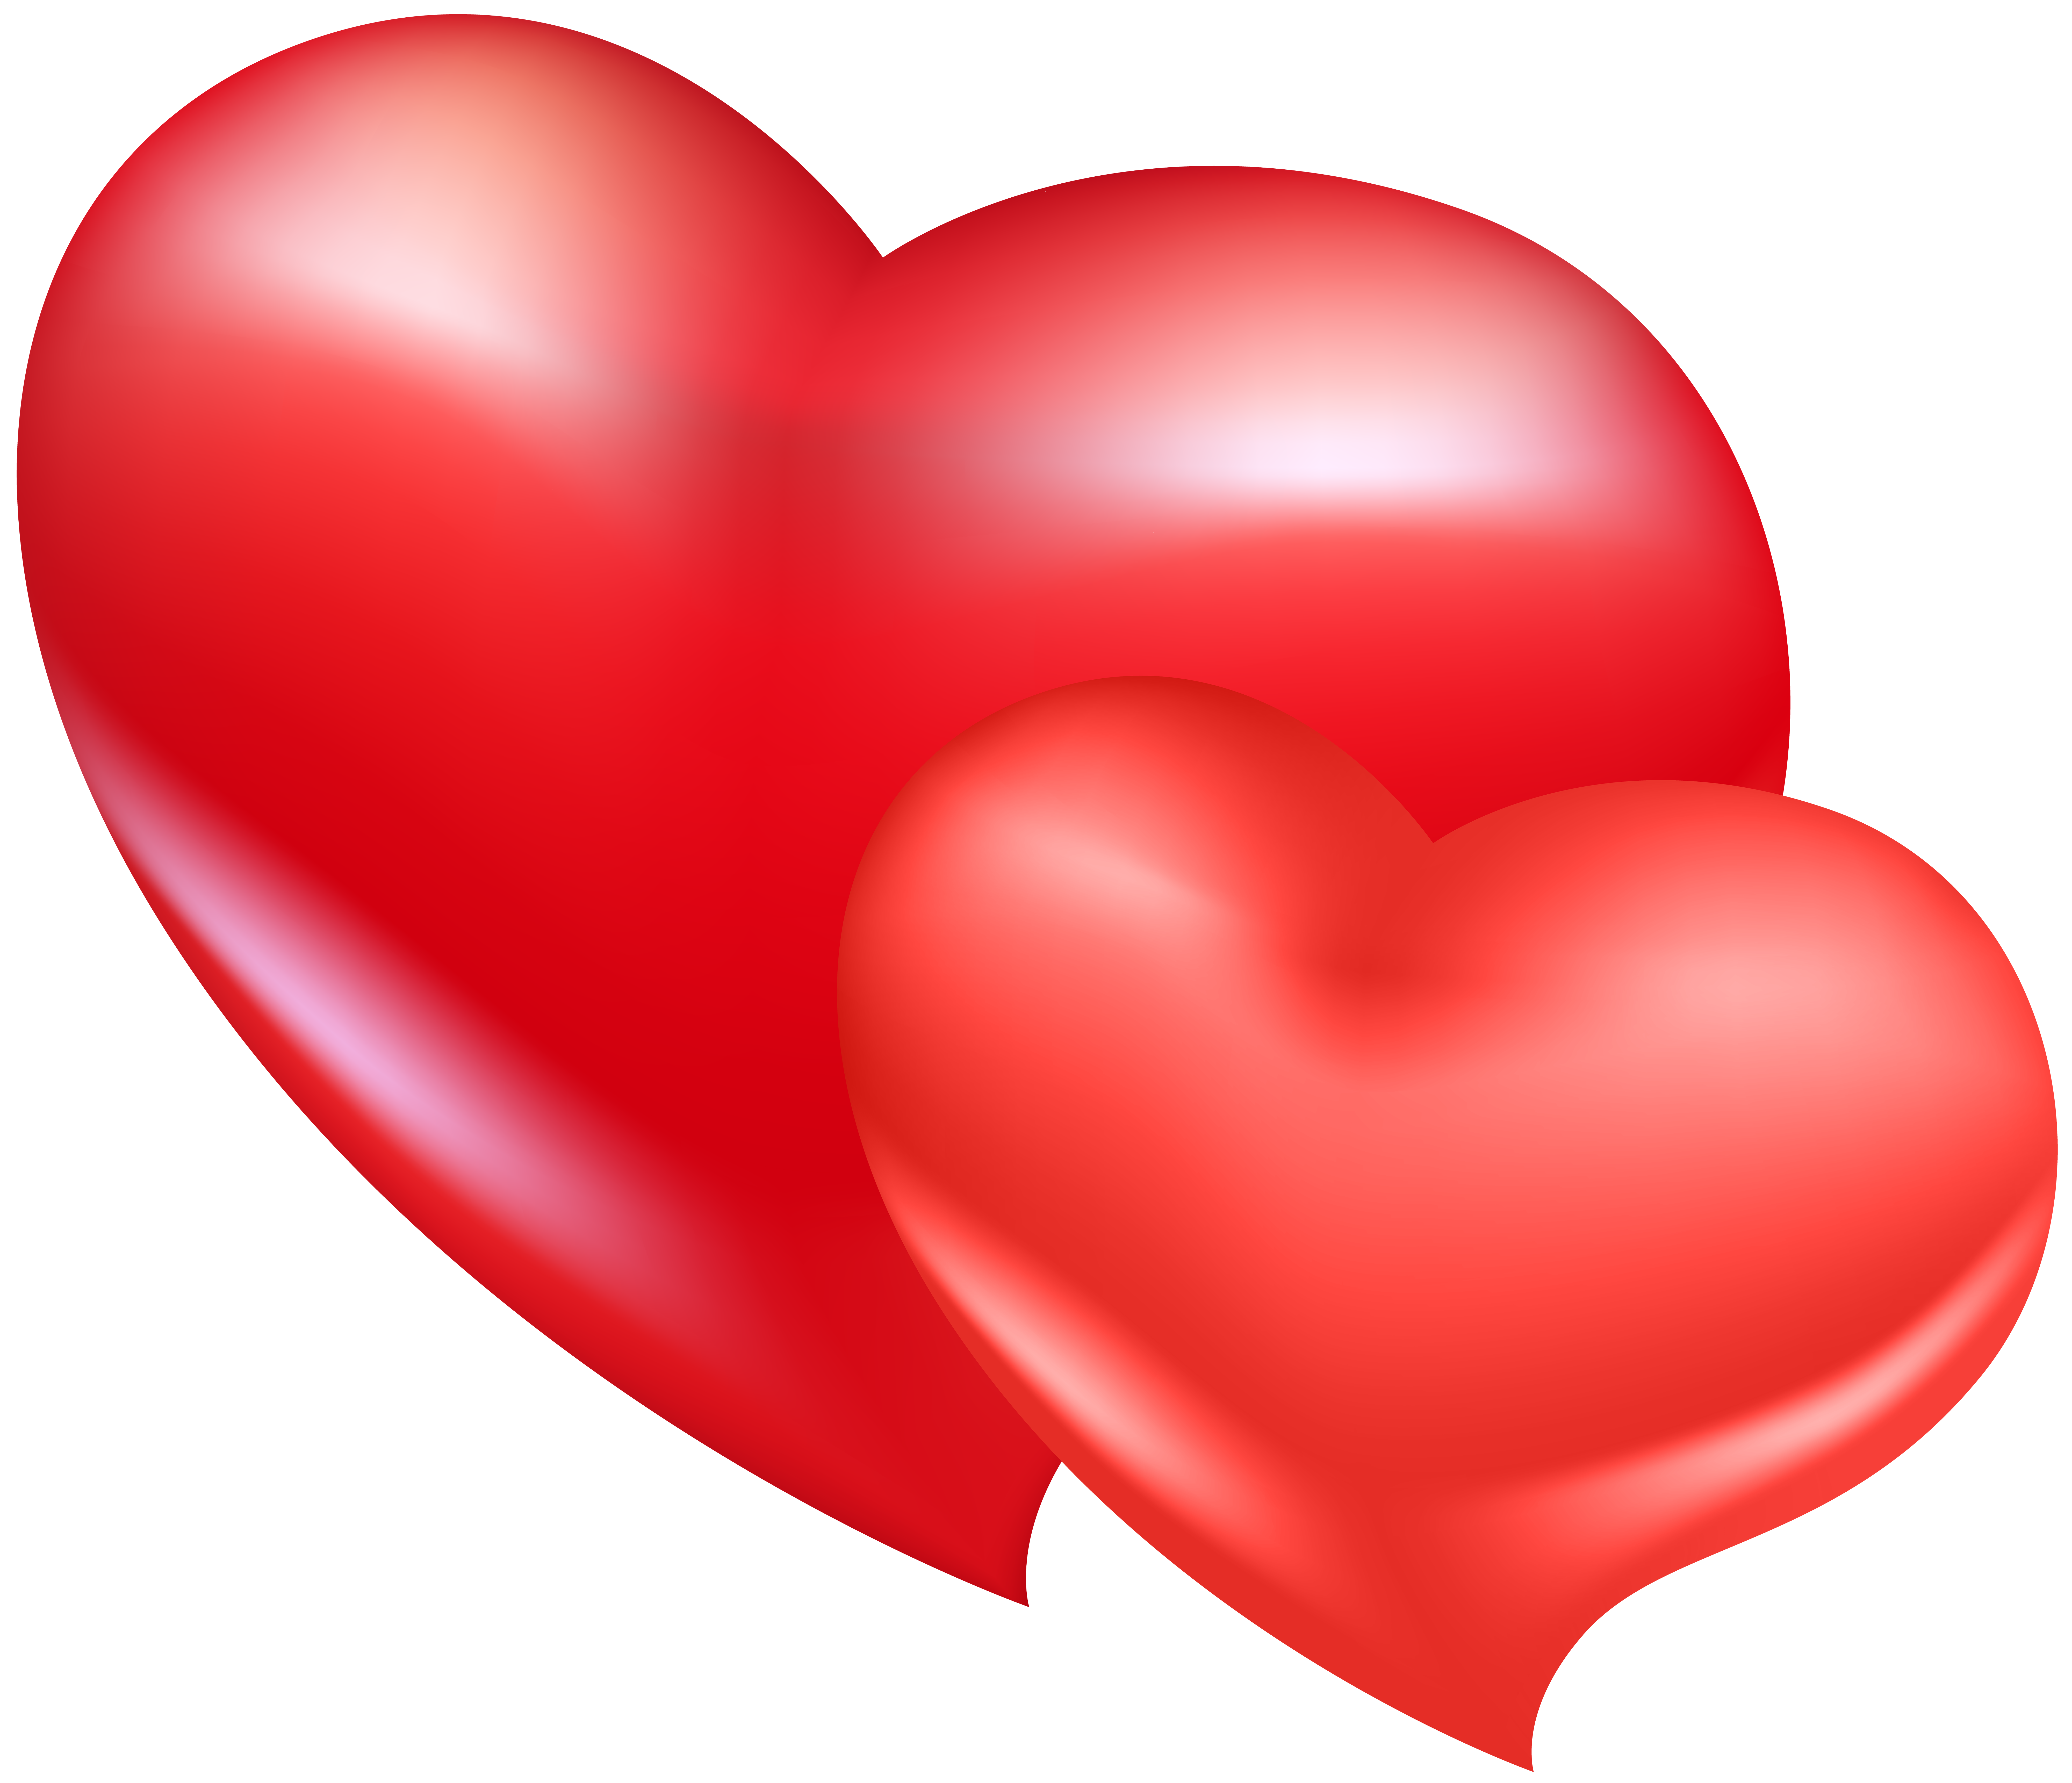 Two Red Hearts PNG Clip Art Image | Gallery Yopriceville - High ...